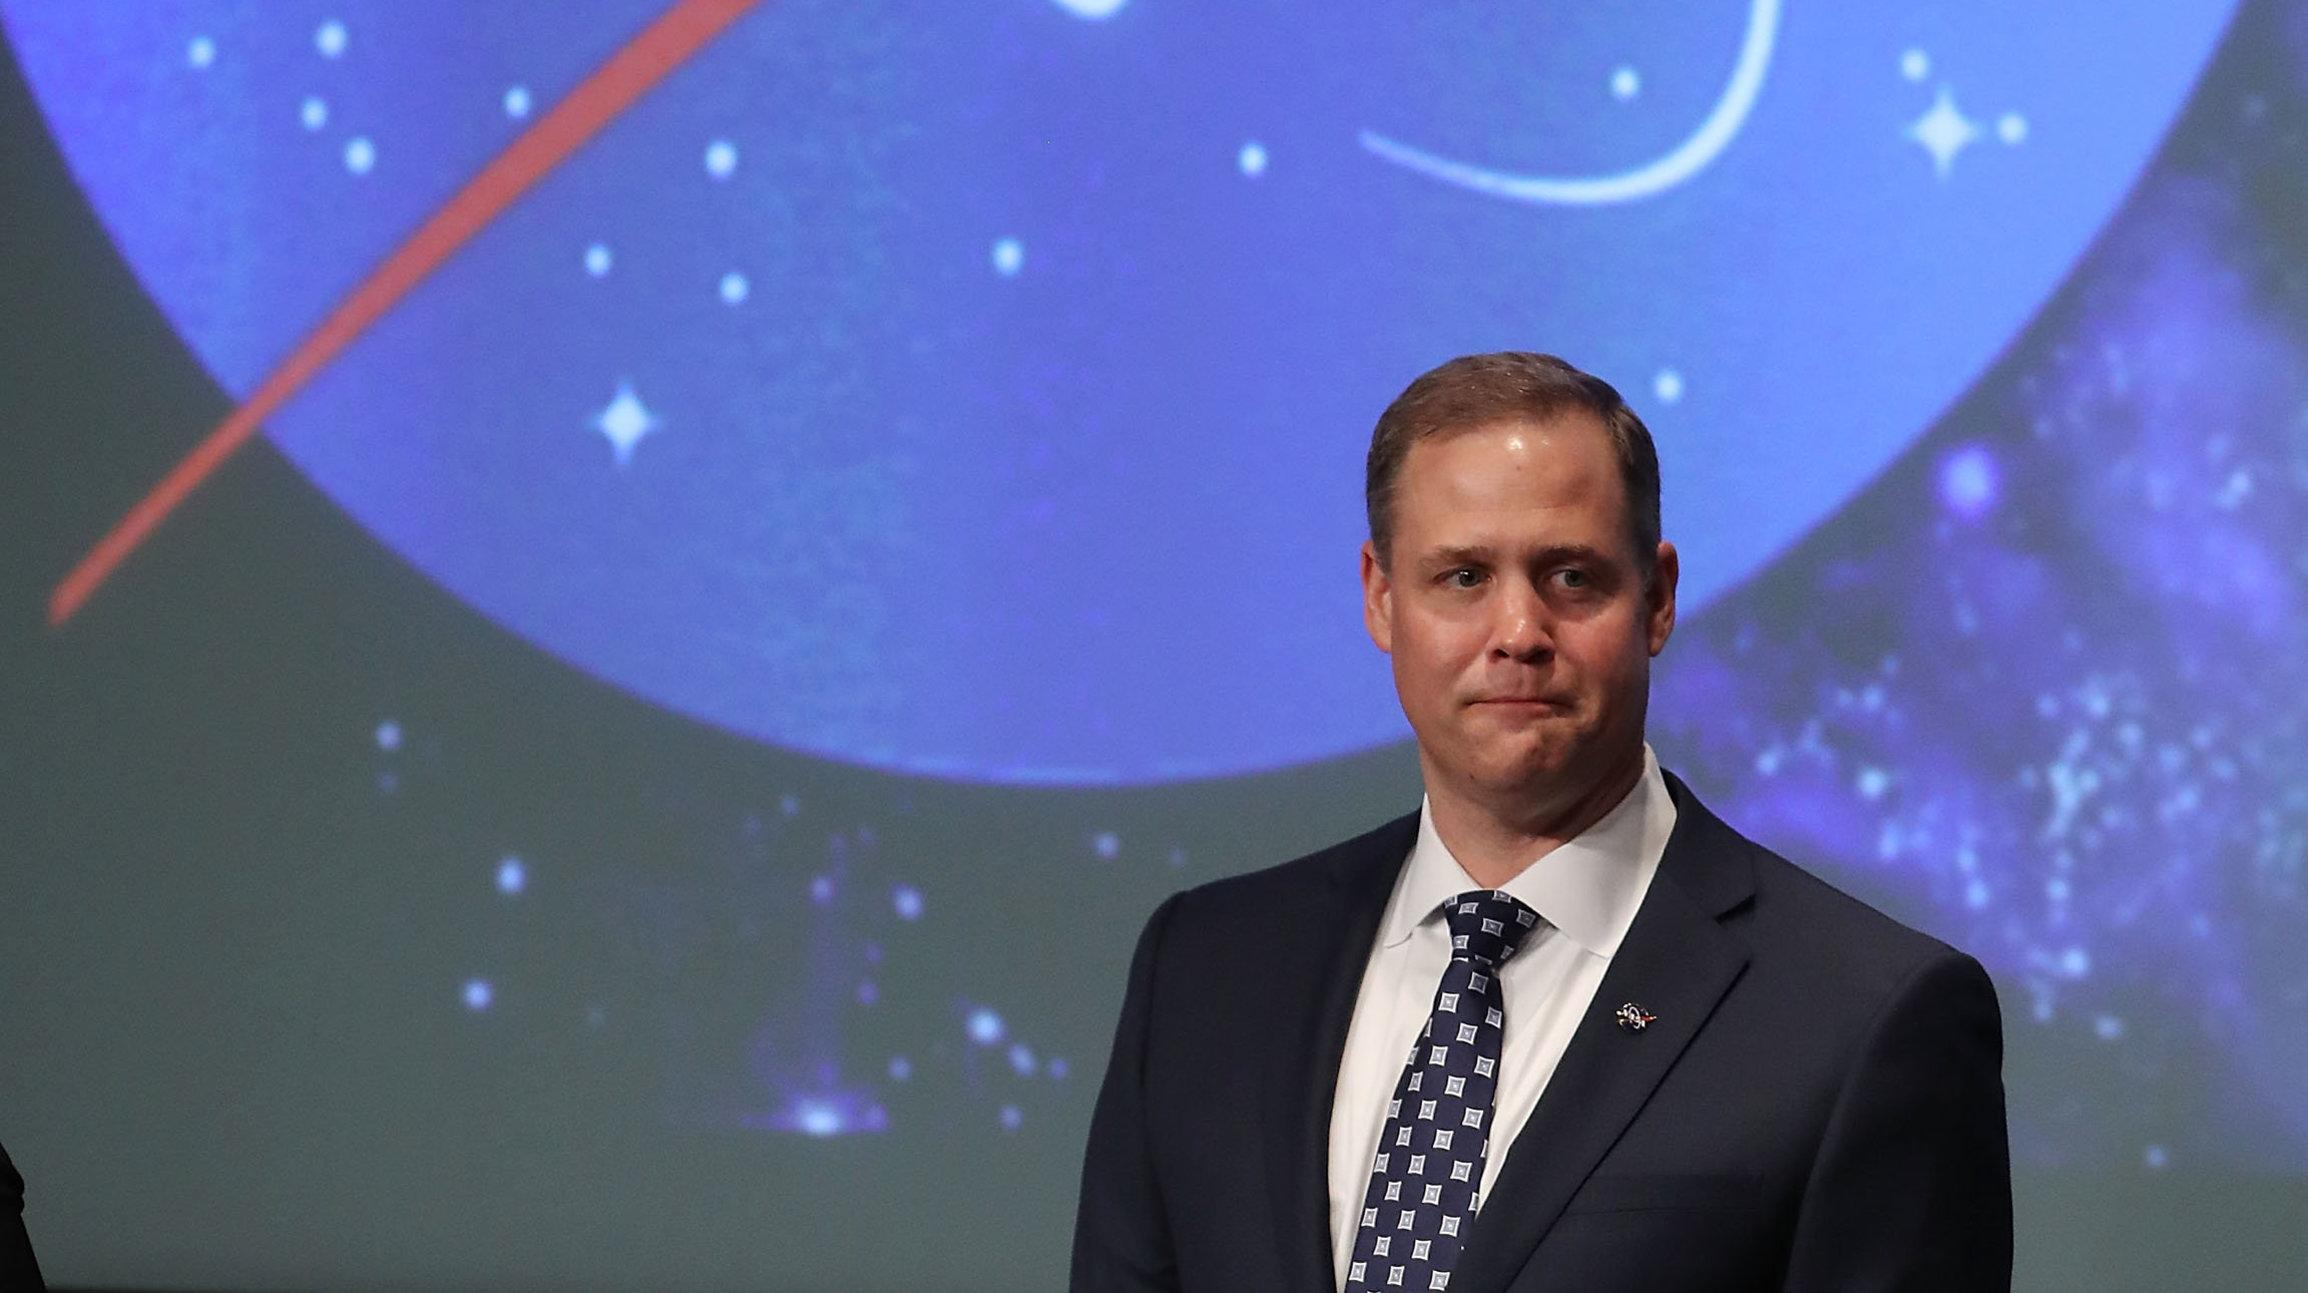 Trump's NASA Chief Has Apparently Changed His Tune On Climate Change